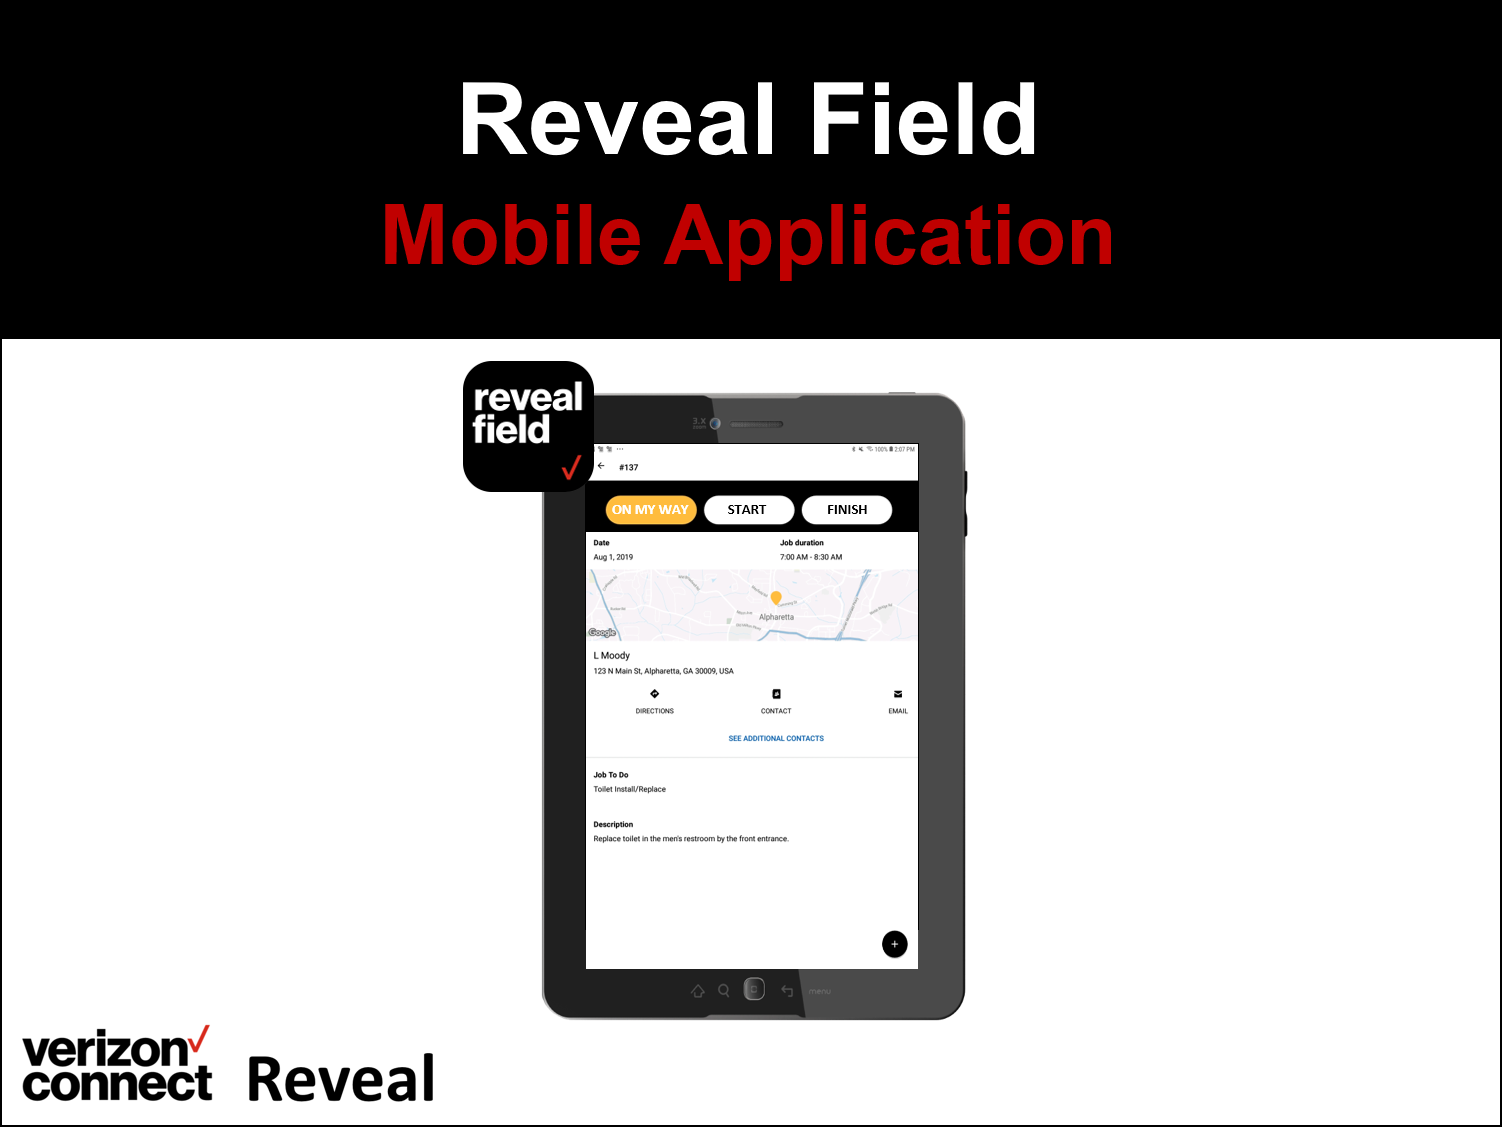 Verizon Connect Reveal Field Mobile App eTutorial (for drivers/technicians)